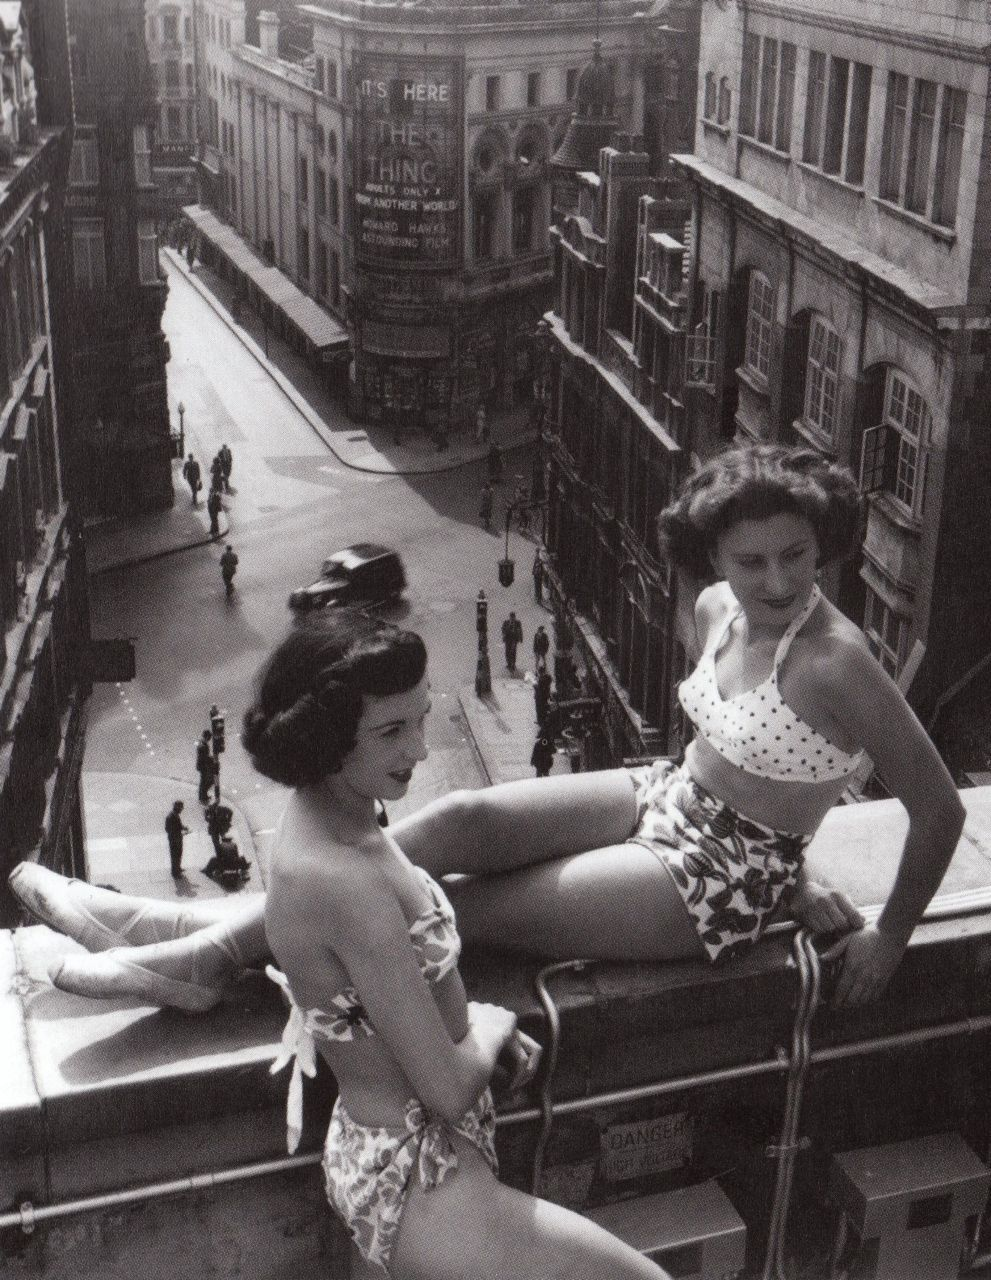 ratak-monodosico:  Sunbathers on a Piccadilly rooftop, July 1953. Photo by Bert Hardy  The doctor says that i'm too much pale, and i always listen carefully to him. Dandy Sunbathe